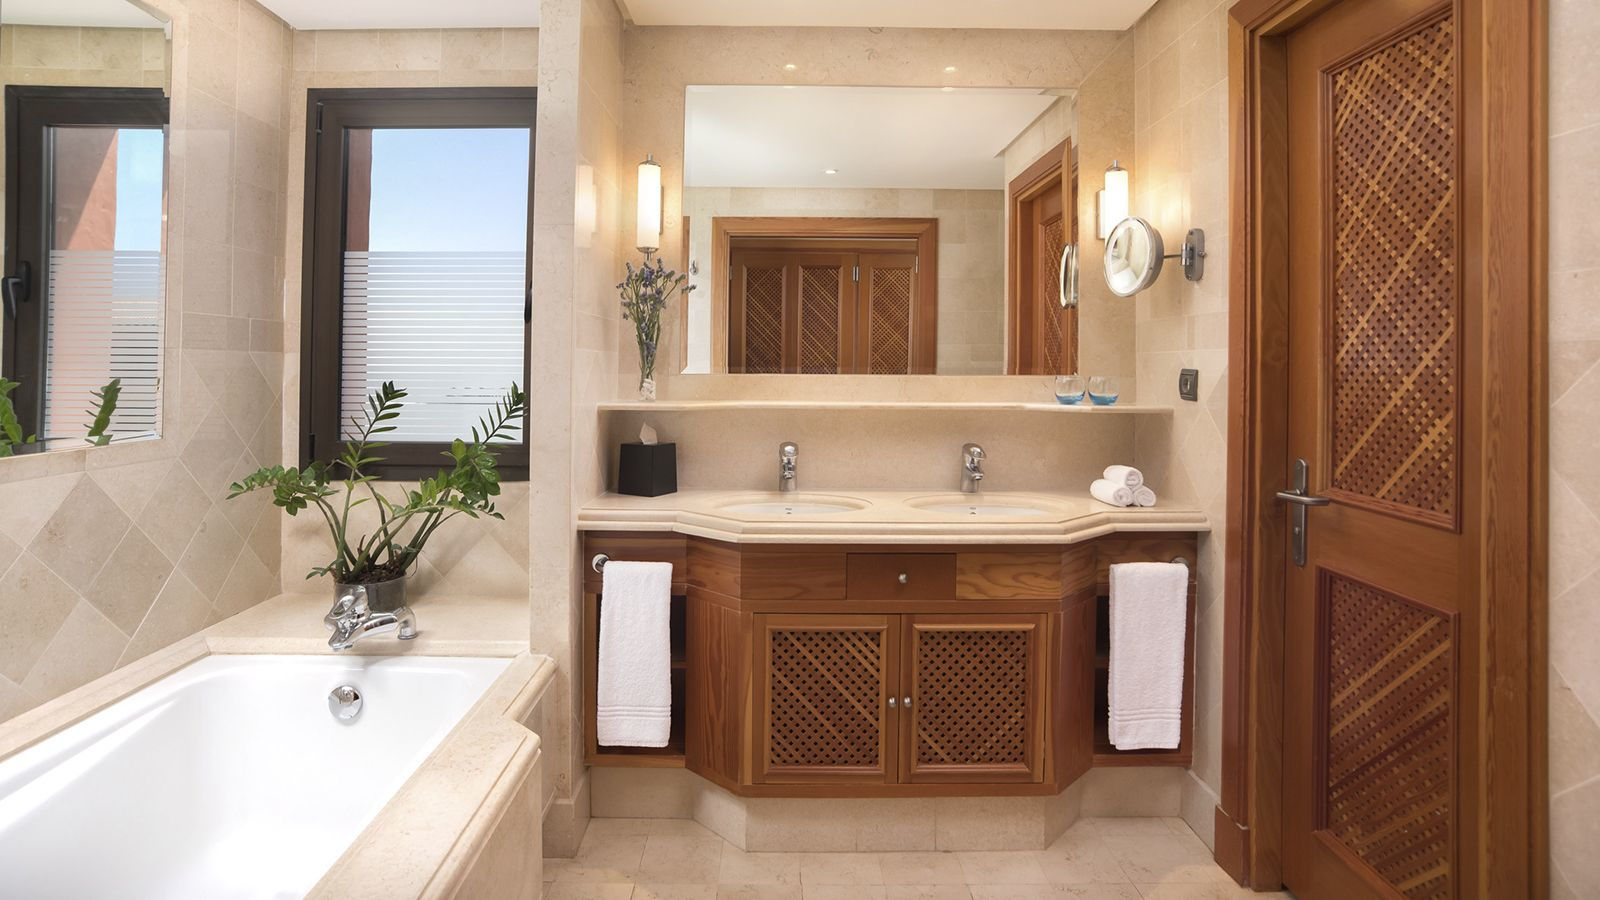 LA CALETA SUITE BATHROOM